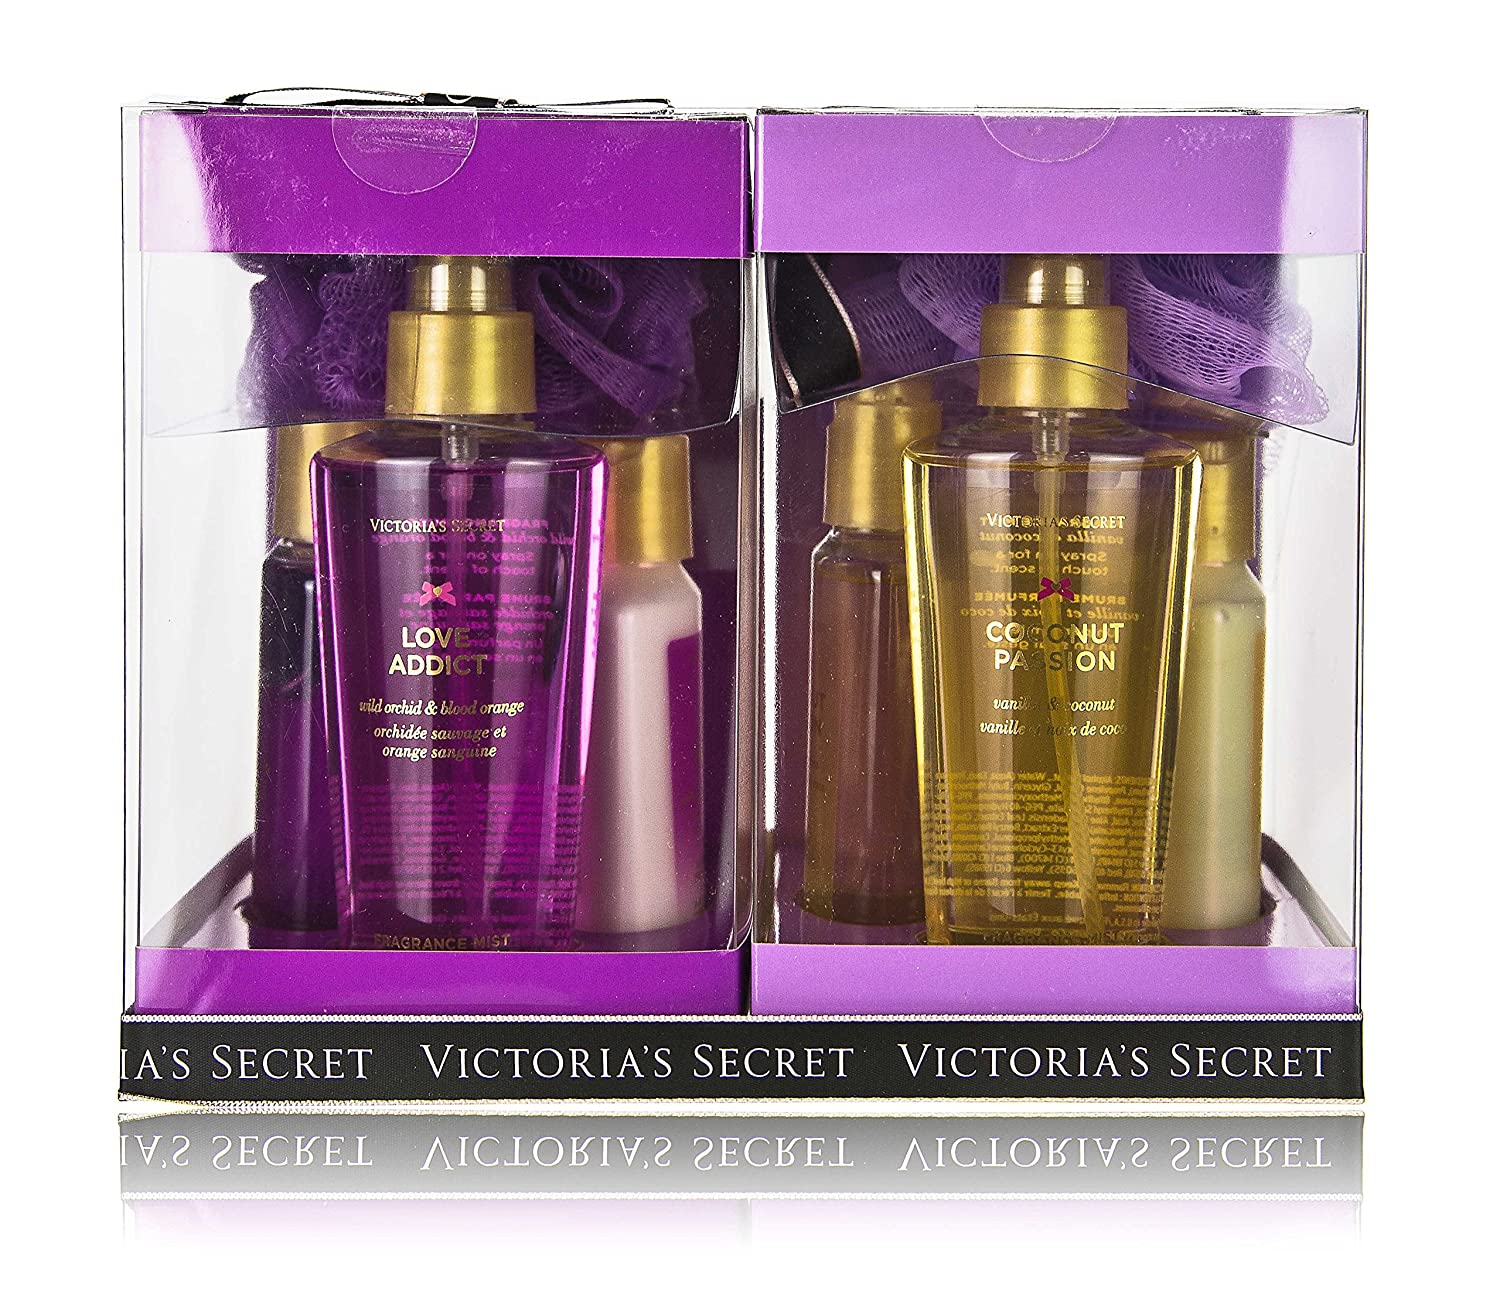 Victorias Secret Coconut Passion & Love Addict Gift Set